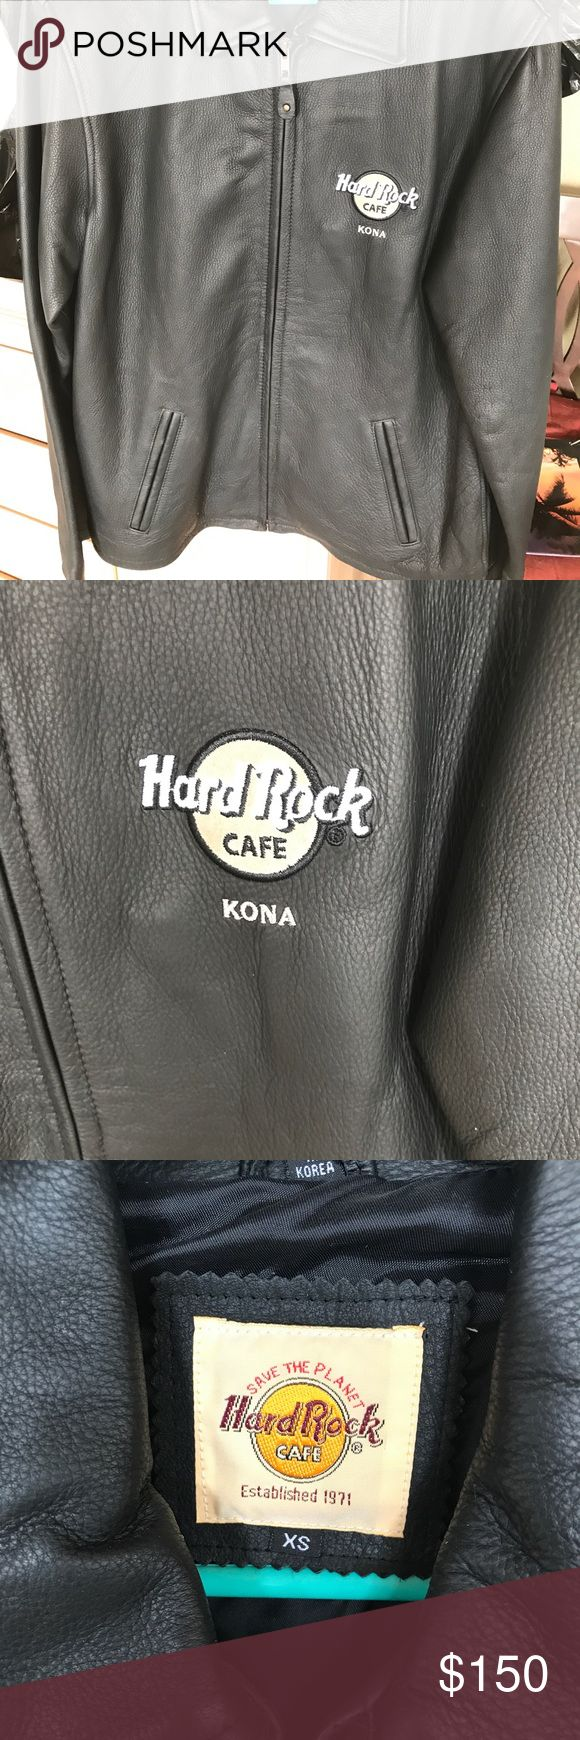 """Leather jacket. Hard Rock Cafe Kona Perfect condition. Worn once. Says xs though I'm 5""""8"""" fits just fine Jackets & Coats"""